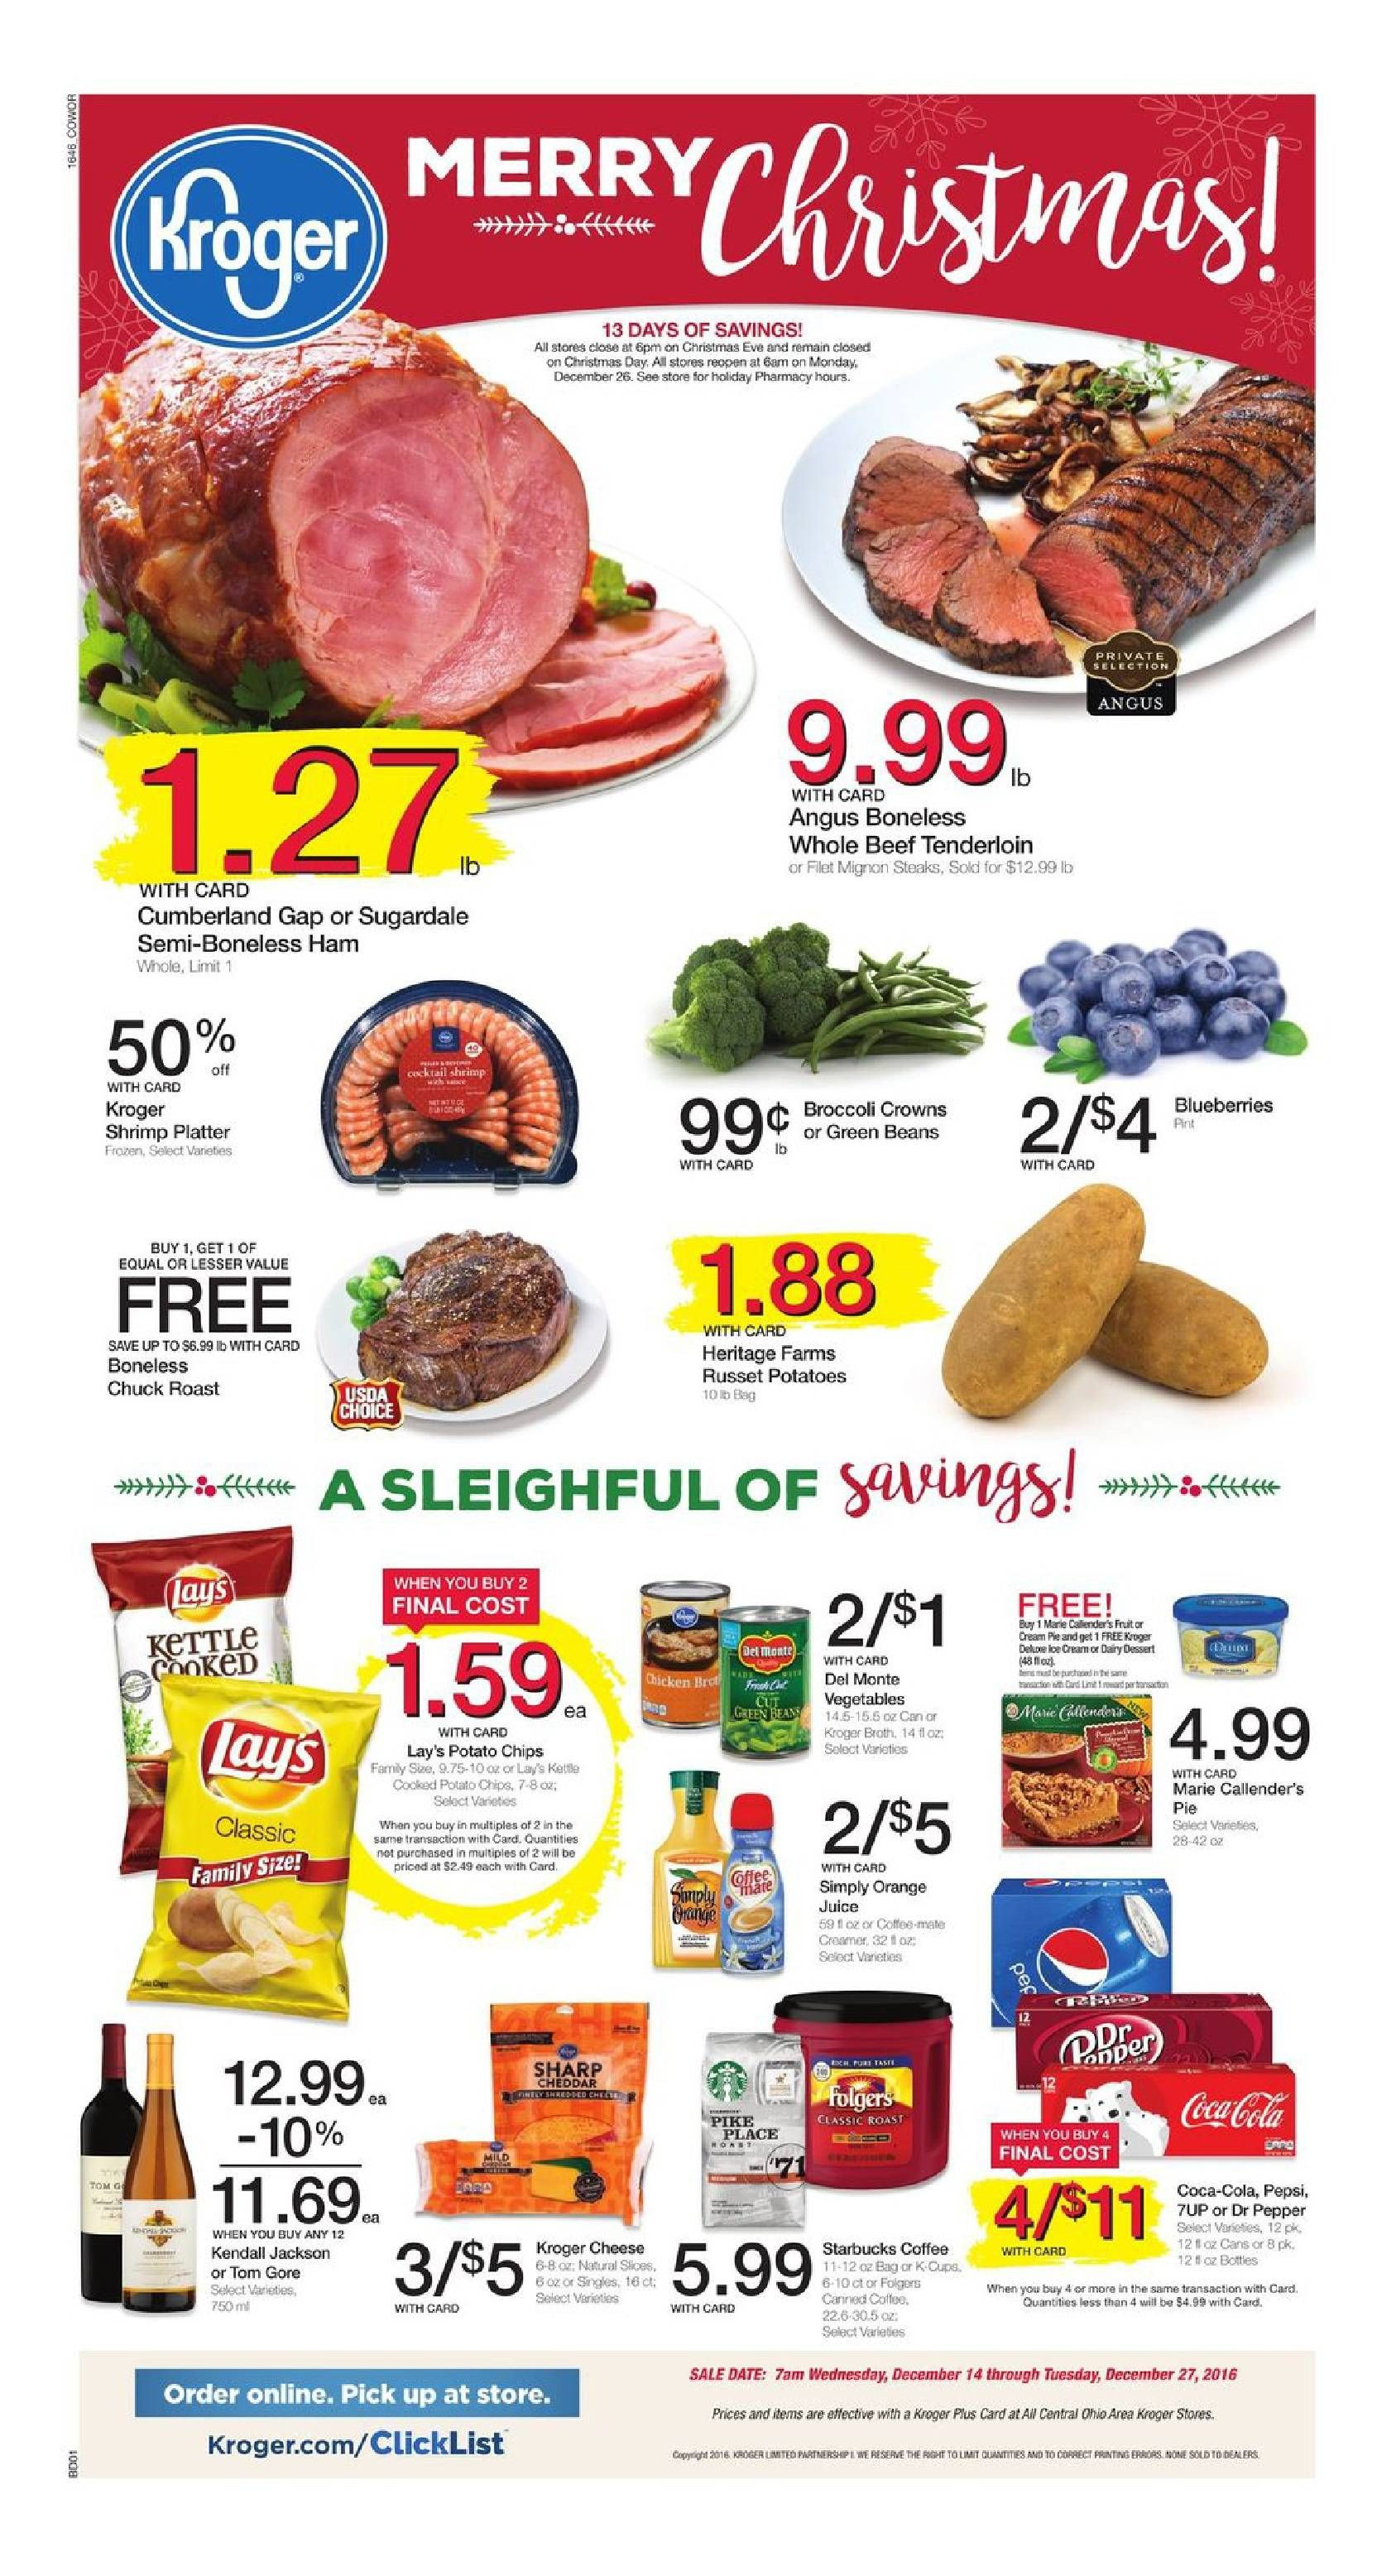 Kroger Weekly Ad December 14 - 27, 2016 - http://www.olcatalog.com/grocery/kroger-weekly-ad.html